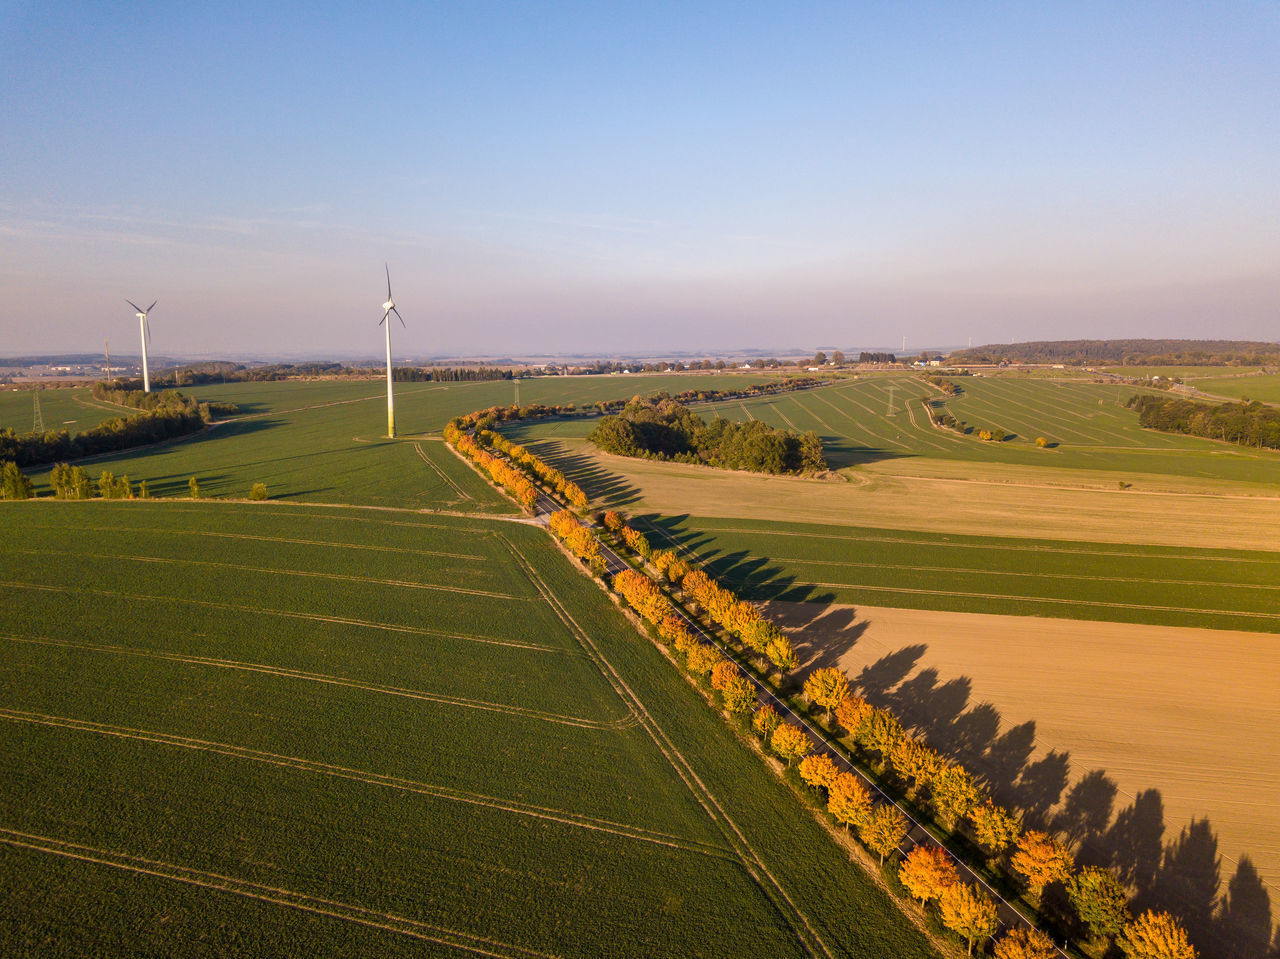 environment, landscape, sky, field, scenics - nature, beauty in nature, land, tranquil scene, rural scene, nature, tranquility, wind turbine, turbine, agriculture, day, renewable energy, no people, green color, environmental conservation, outdoors, sustainable resources